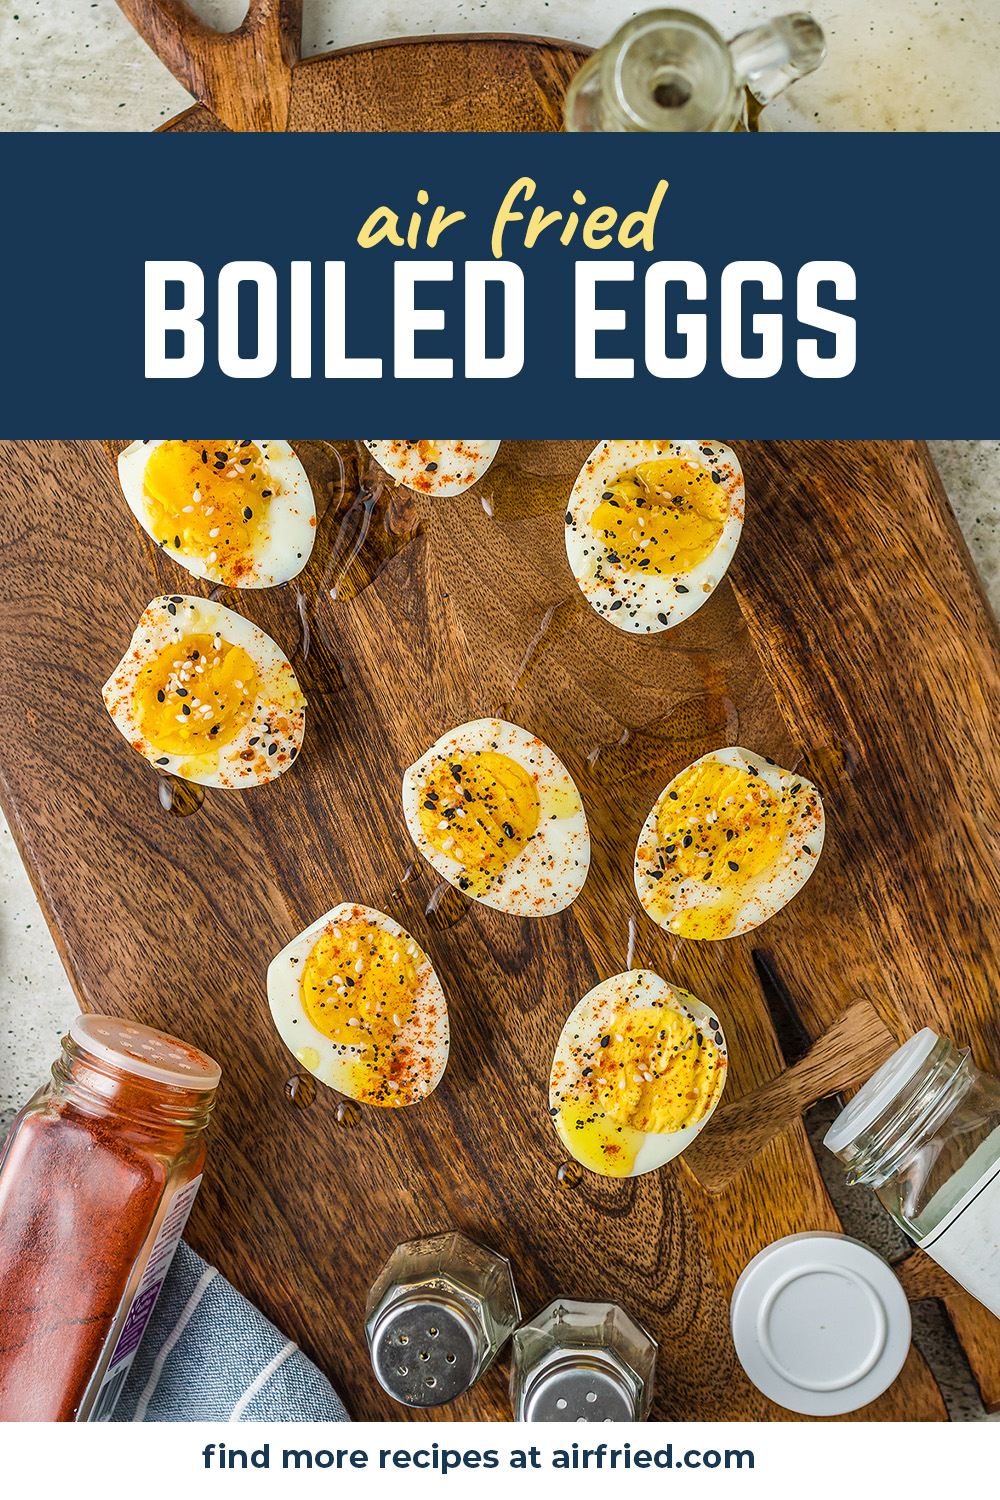 The air fryer is a great way to boil your eggs if you like to control how well done they are.